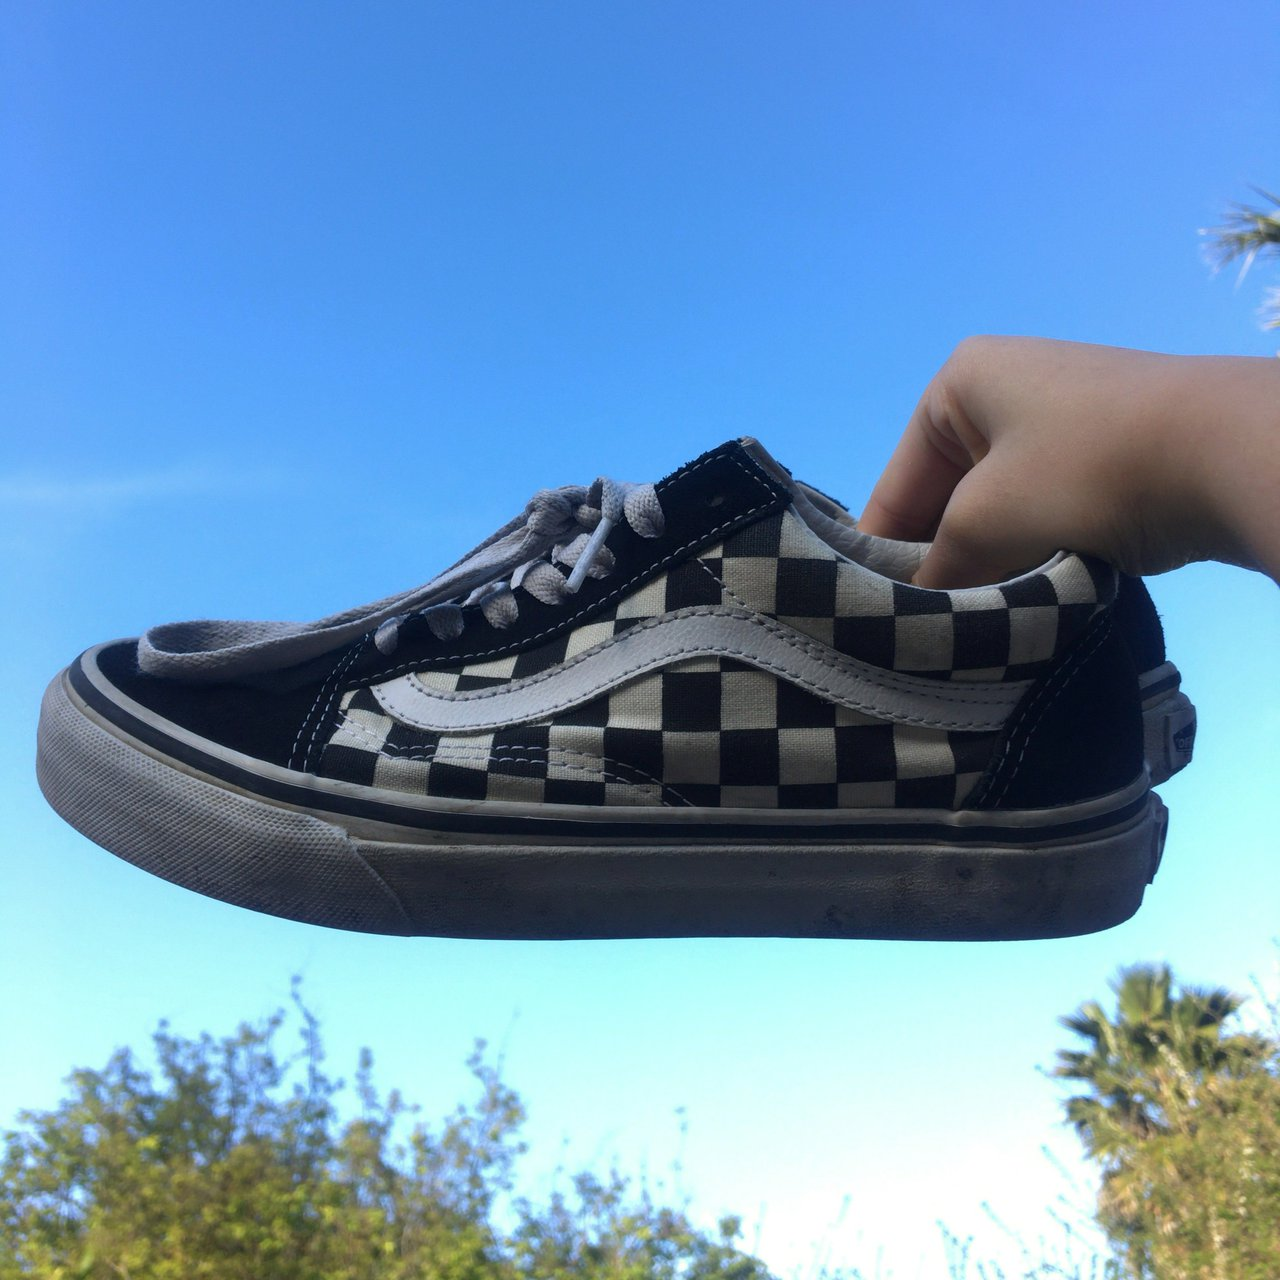 e83a86d1f1b  hantoto. 11 months ago. United States. checkered vans old skools size 7  women s and ...